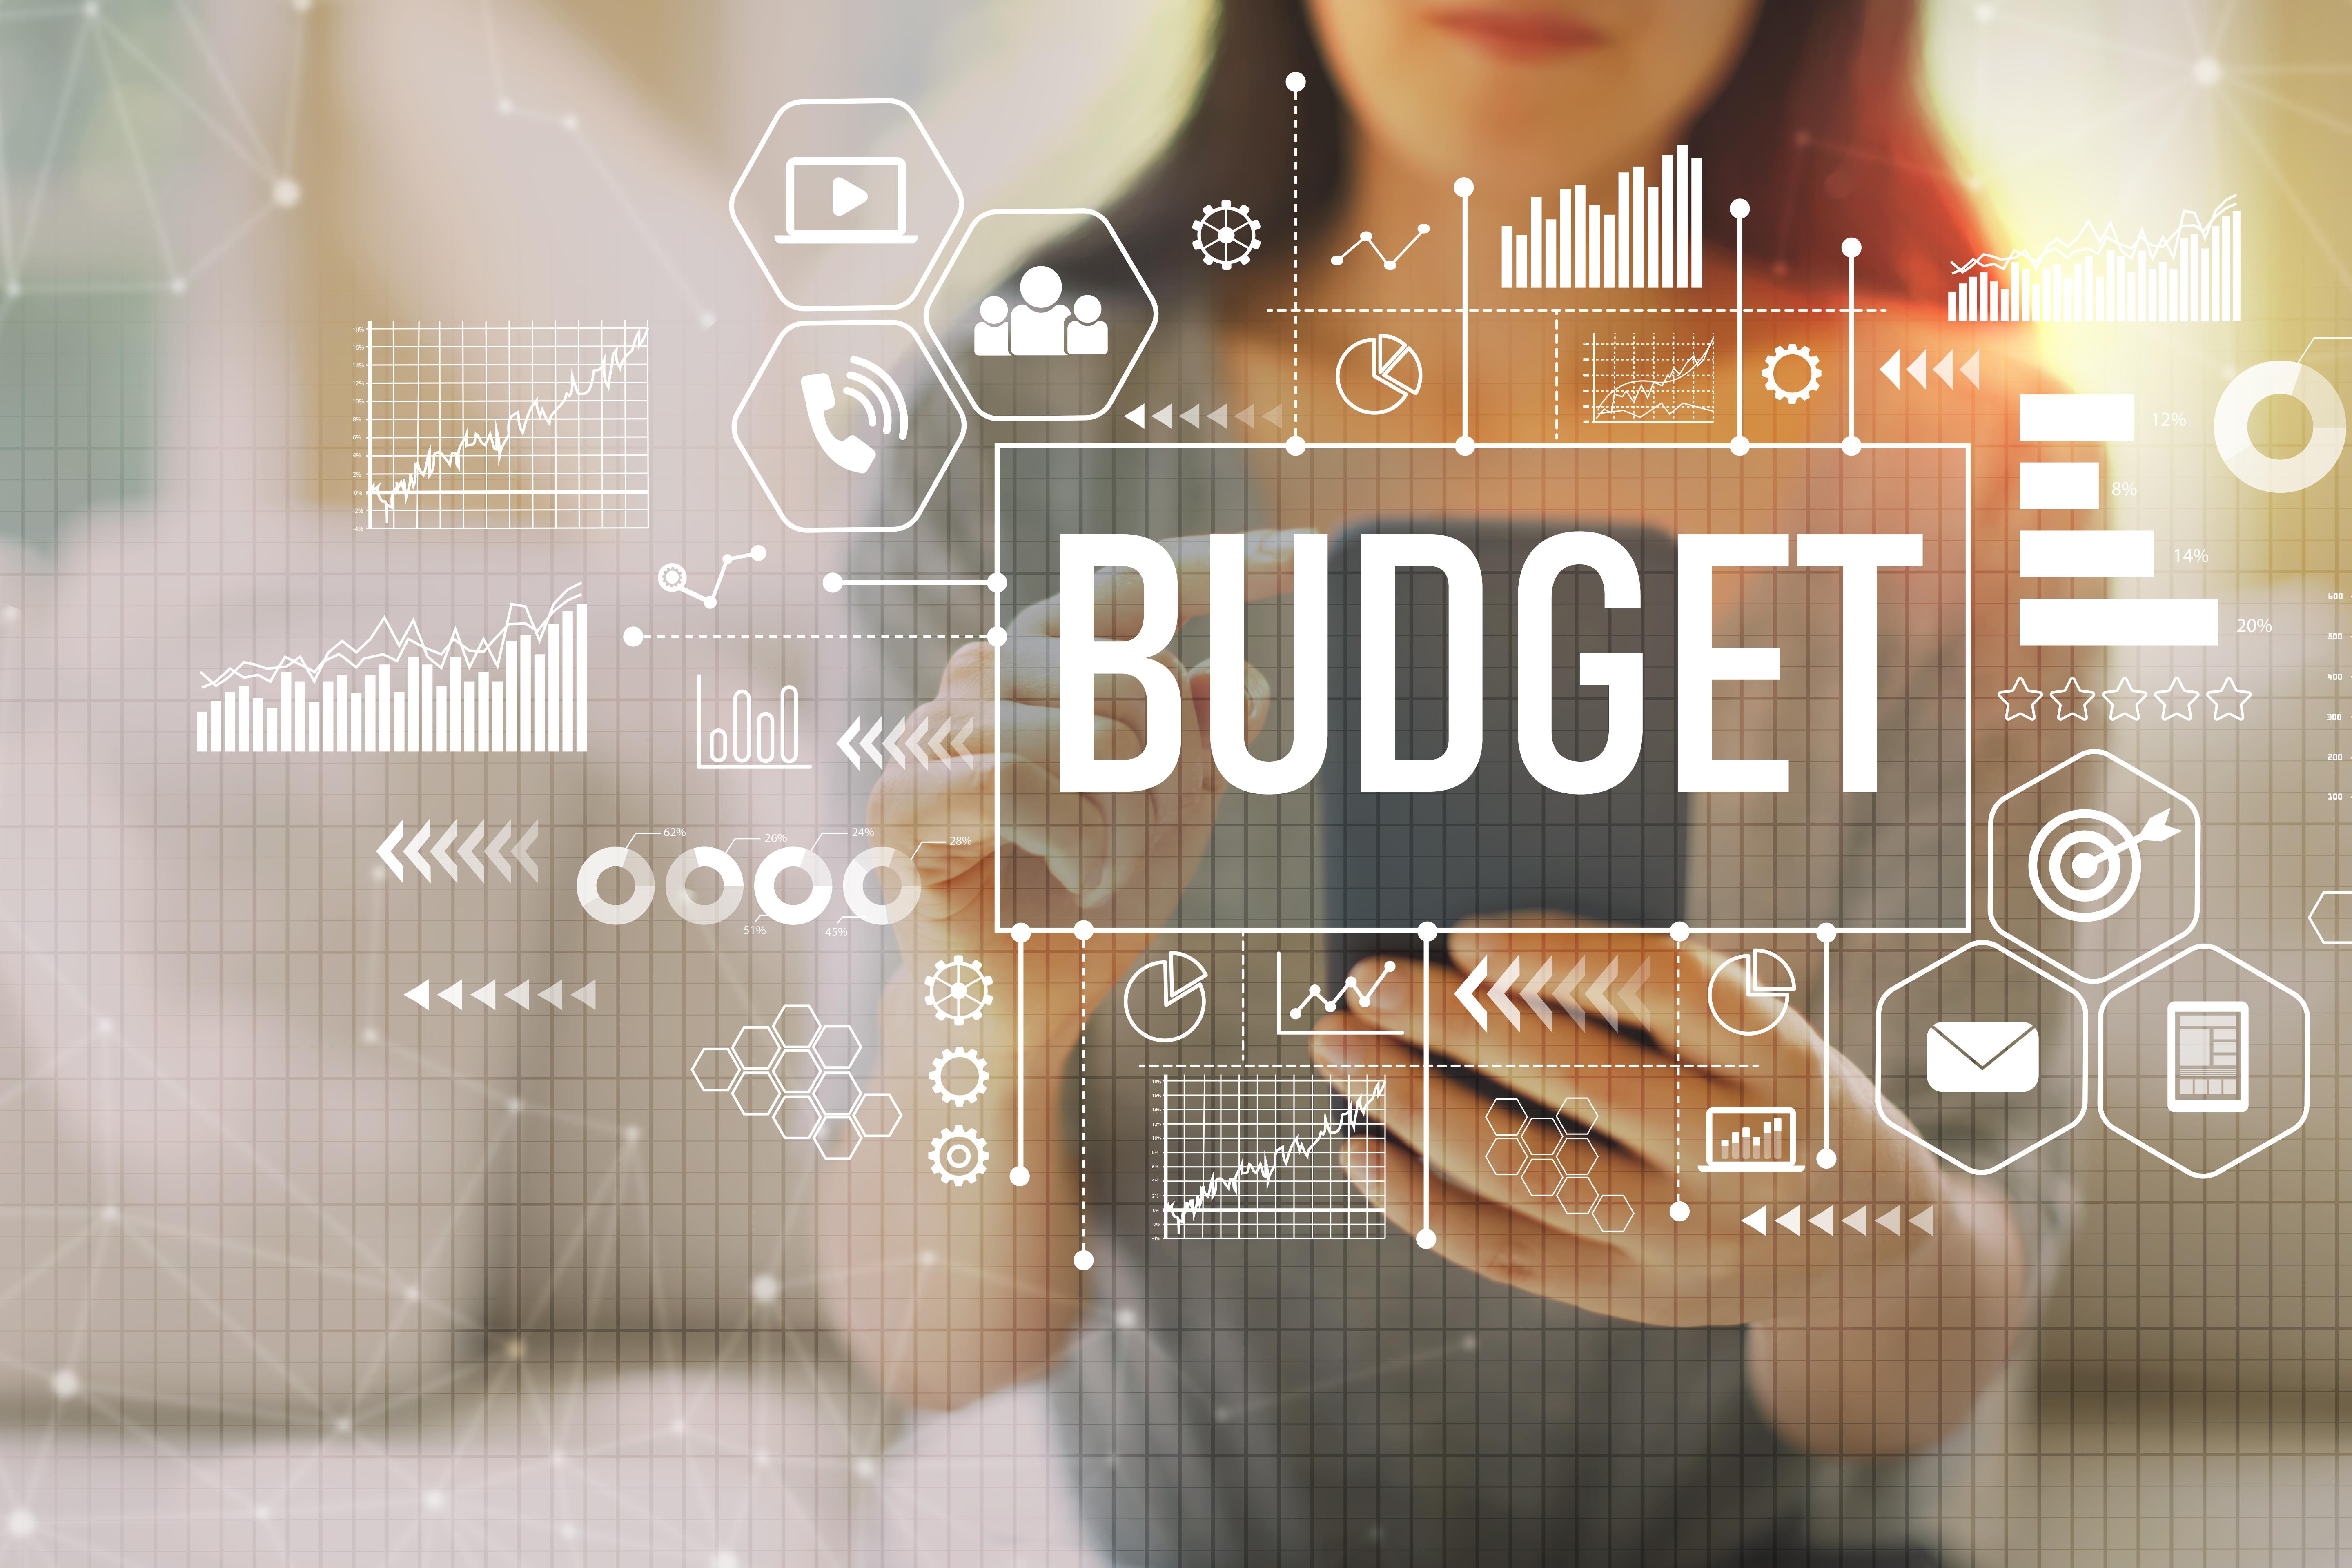 The Top 5 Personal Budget Software Apps for Your Family Thumbnail